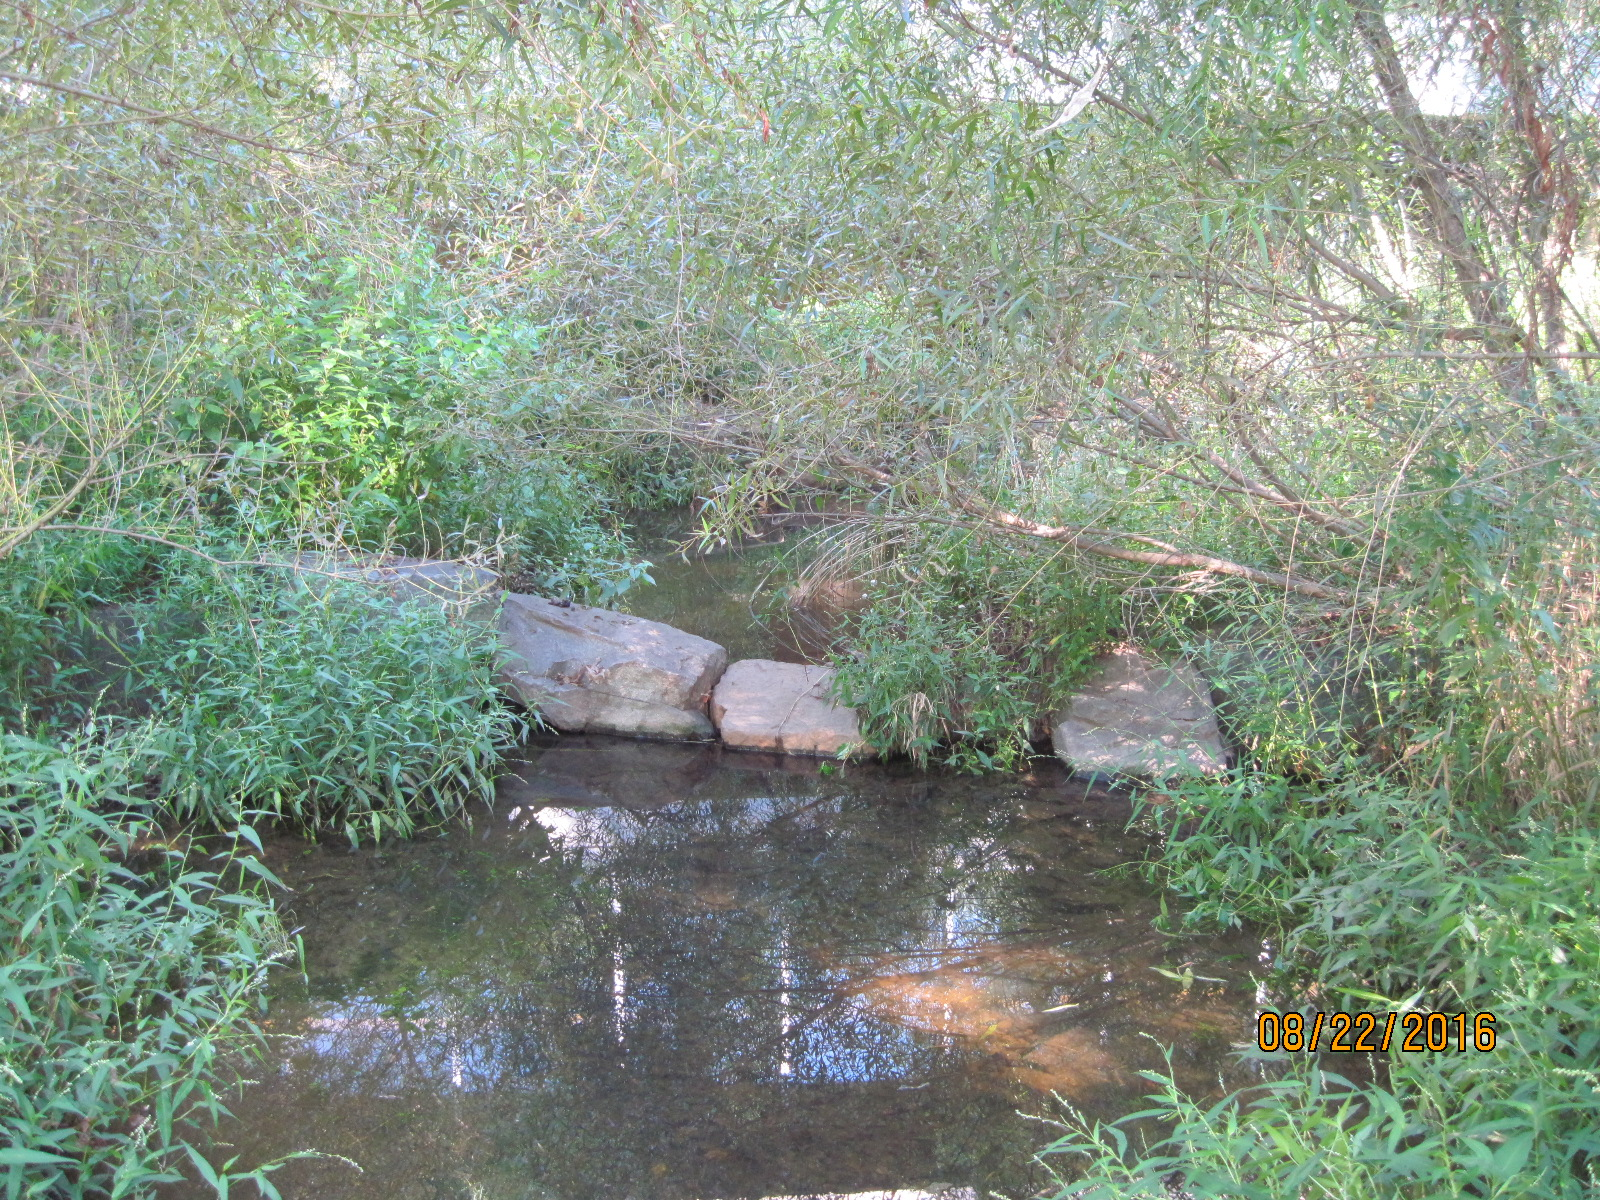 The riparian vegetation is thriving 7 years after construction, as shown in this photo of one of the stream's pools taken the day after a storm.